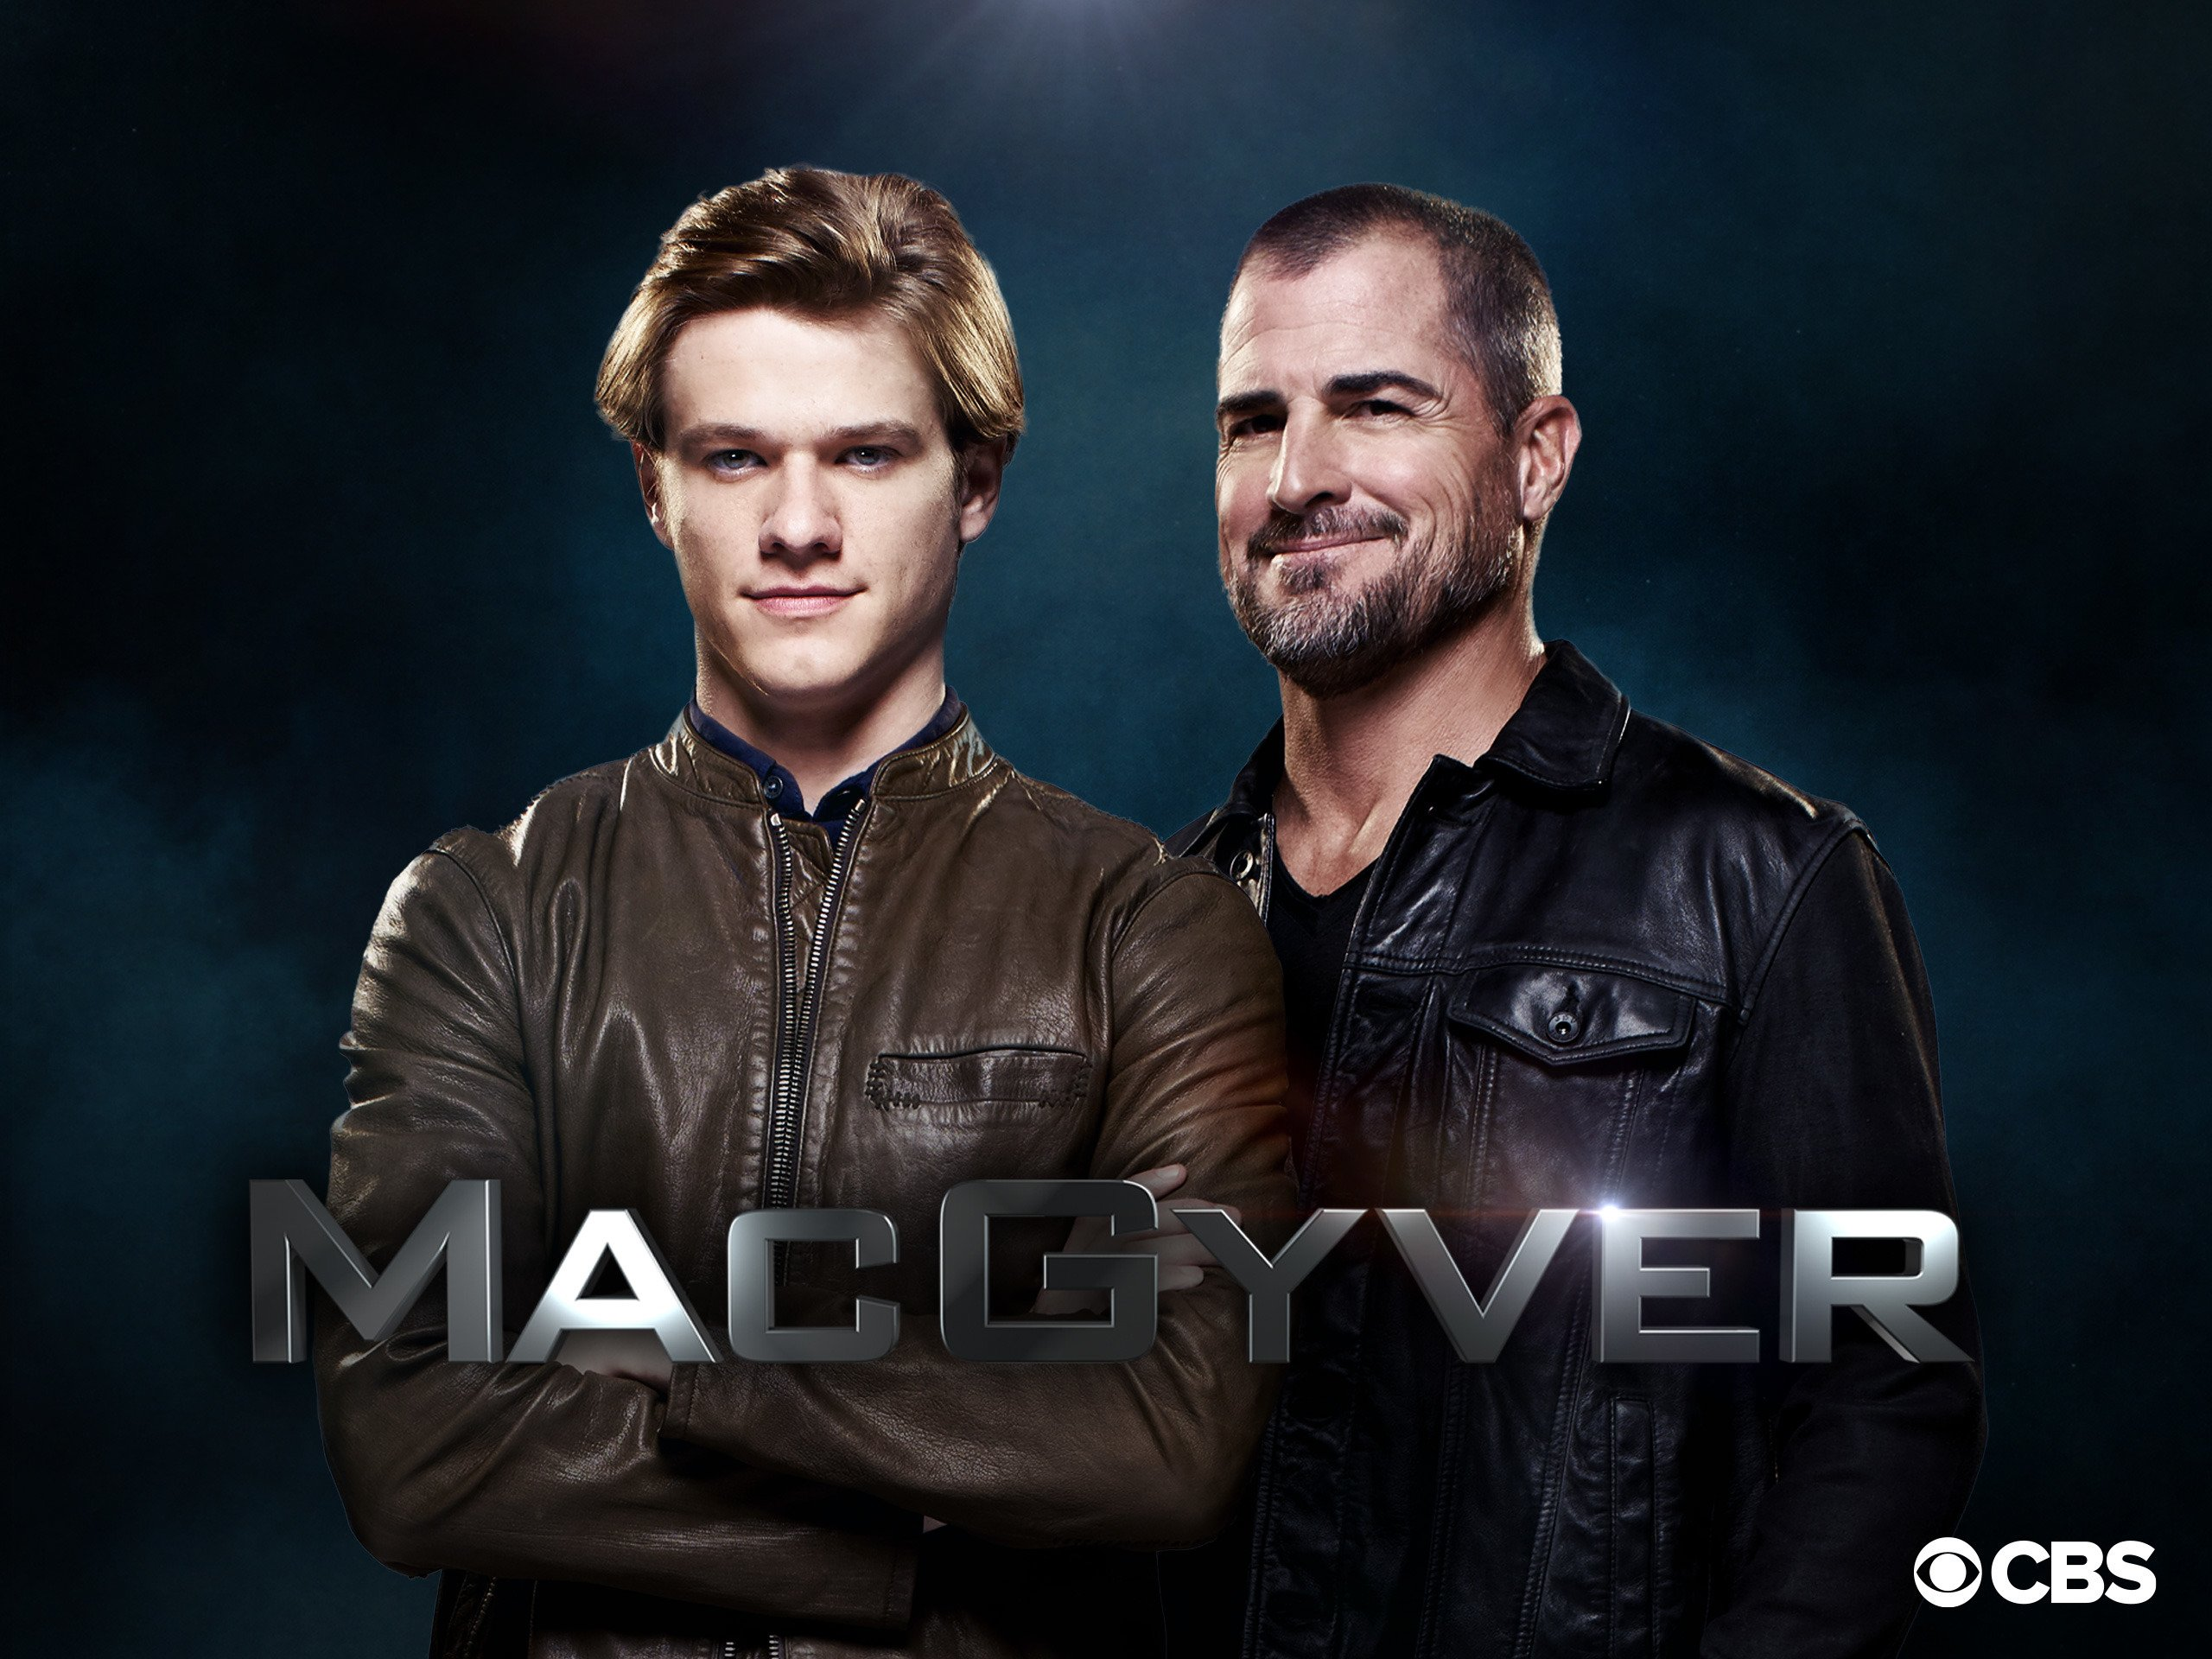 MacGyver Season 3 Episode 22 (S03E22) – Mason + Cable + Choices (Season Finale)